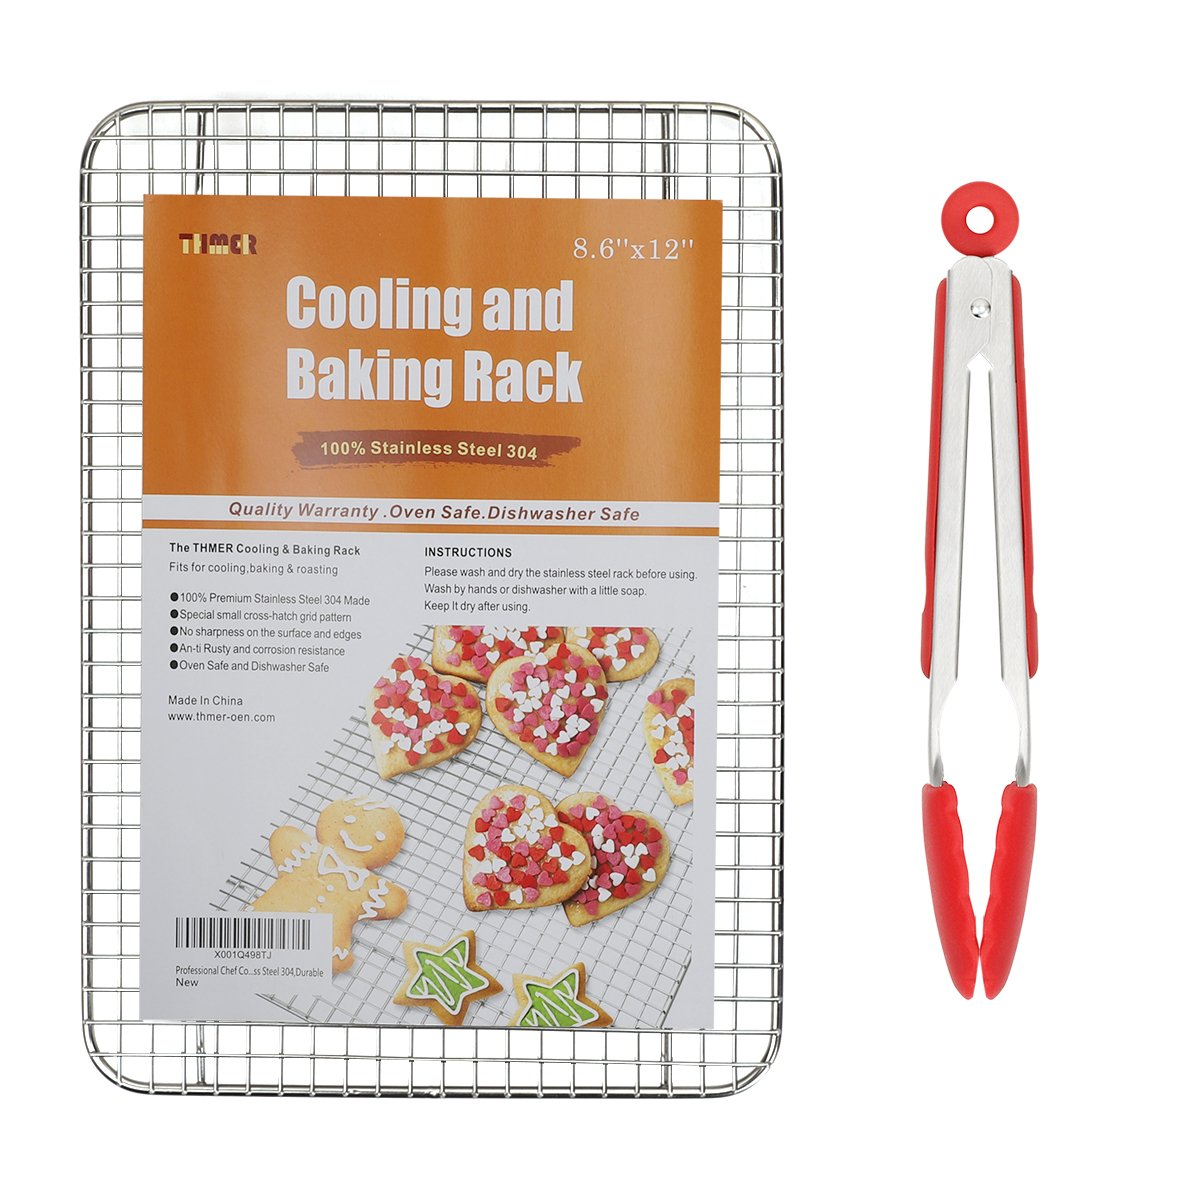 Thmer Thmer Professional Cooling Baking Rack,Baking Rack Fits Half Sheet Pans Cool Cookies,Cakes,Breads - Oven Safe Cooking,Roasting,Grilling,BBQ - 100% Stainless Steel 304,Durable(8.6''x12'')